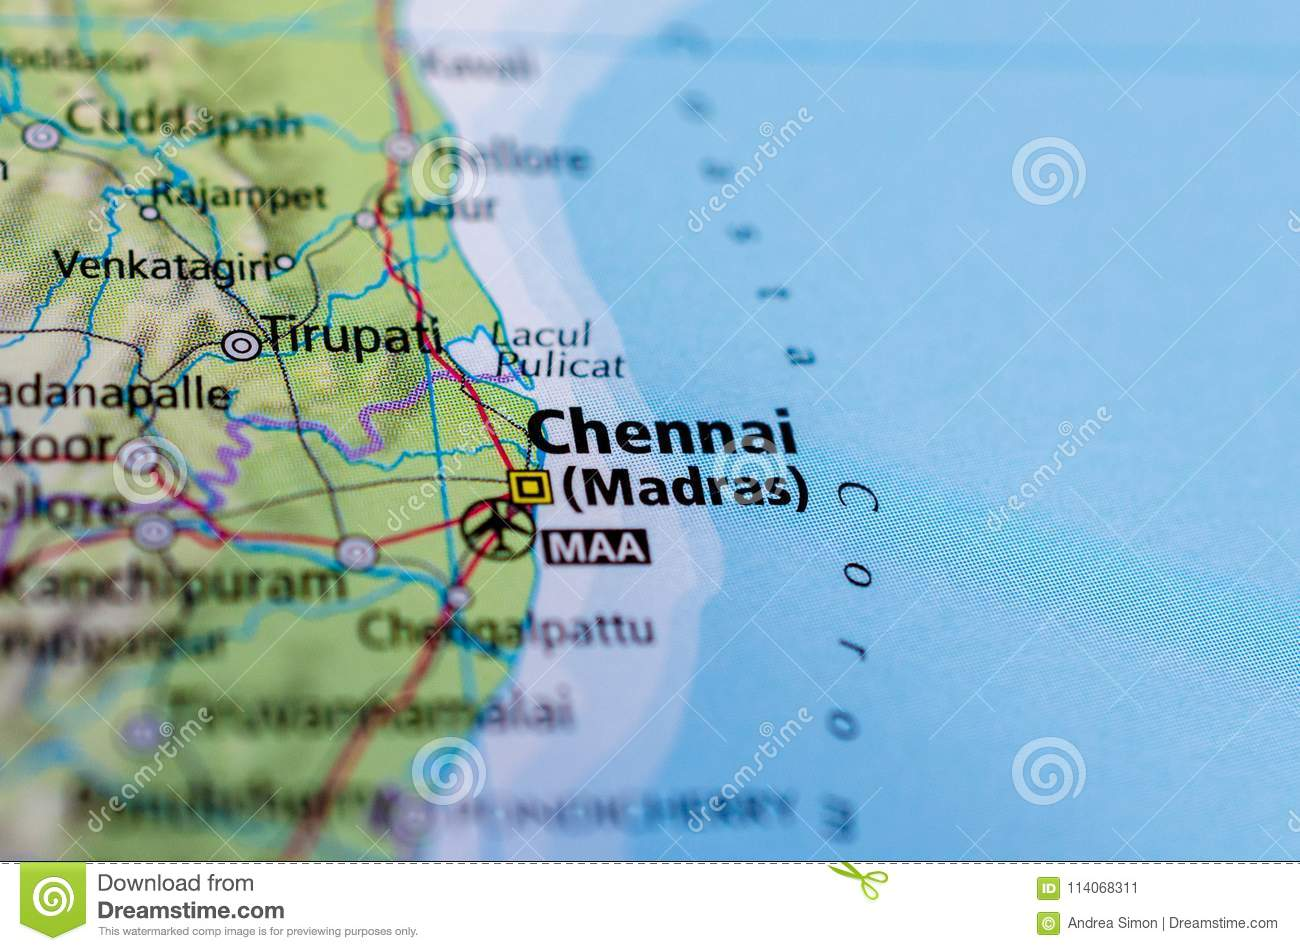 Chennai or Madras on map stock image. Image of papers ... on highway state map, punjab state map, london state map, singapore state map, washington state map, bengal state map, rome state map, dallas state map, salem state map, uttar pradesh state map, jaipur state map, assam state map, gujarat state map, burma state map, delhi state map, ontario state map, goa state map,